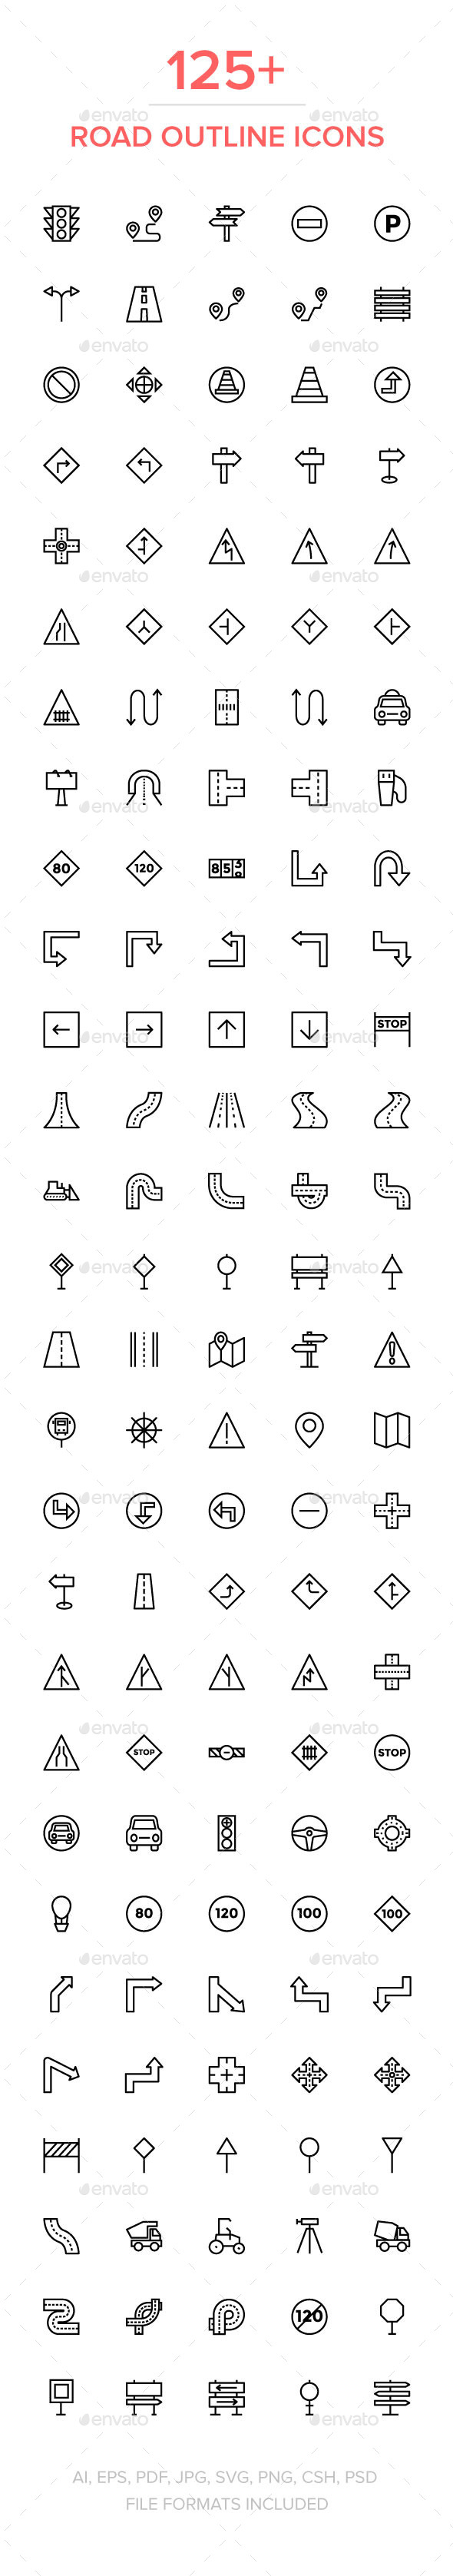 125+ Road Outline Vector Icons - Icons